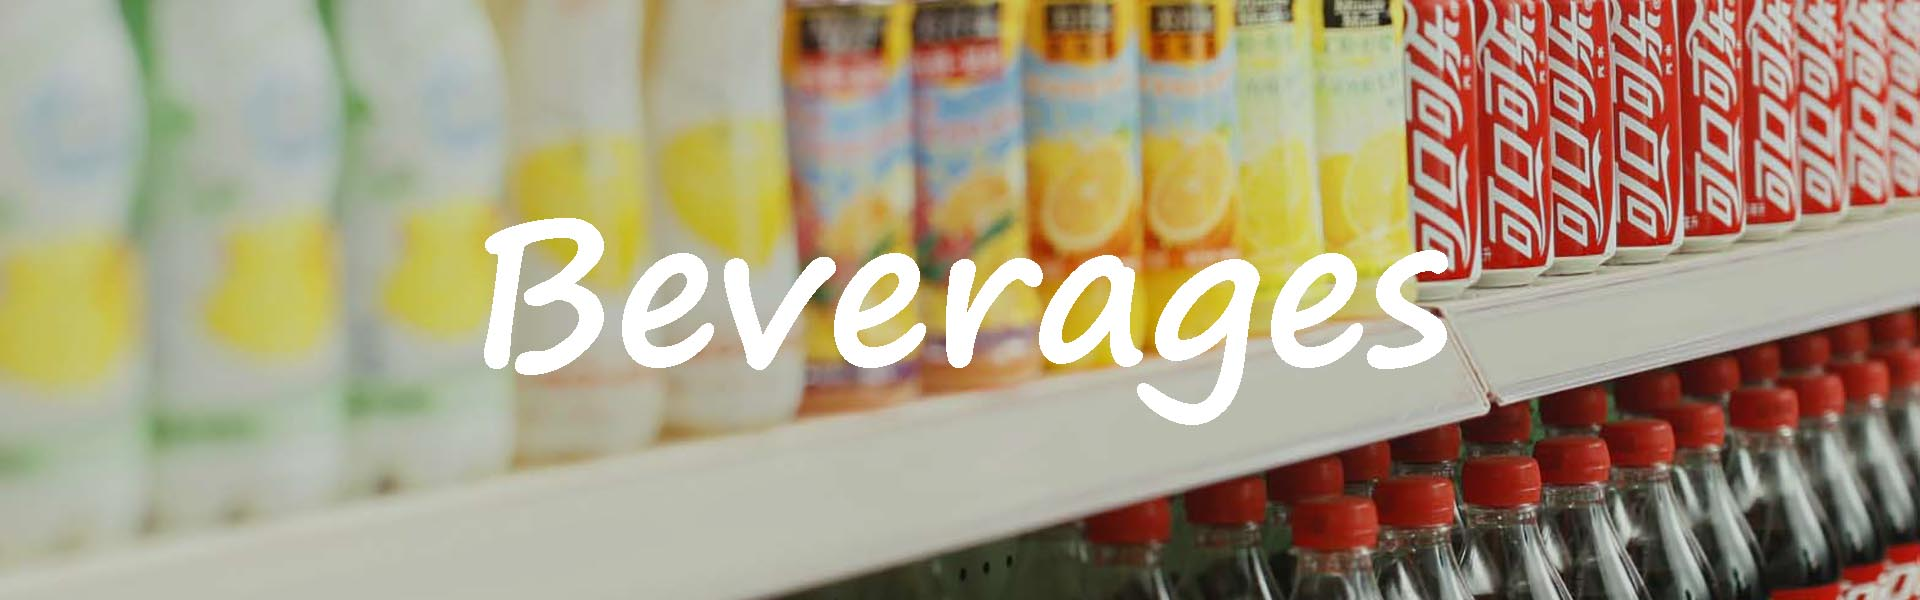 web-ready-beverages-2